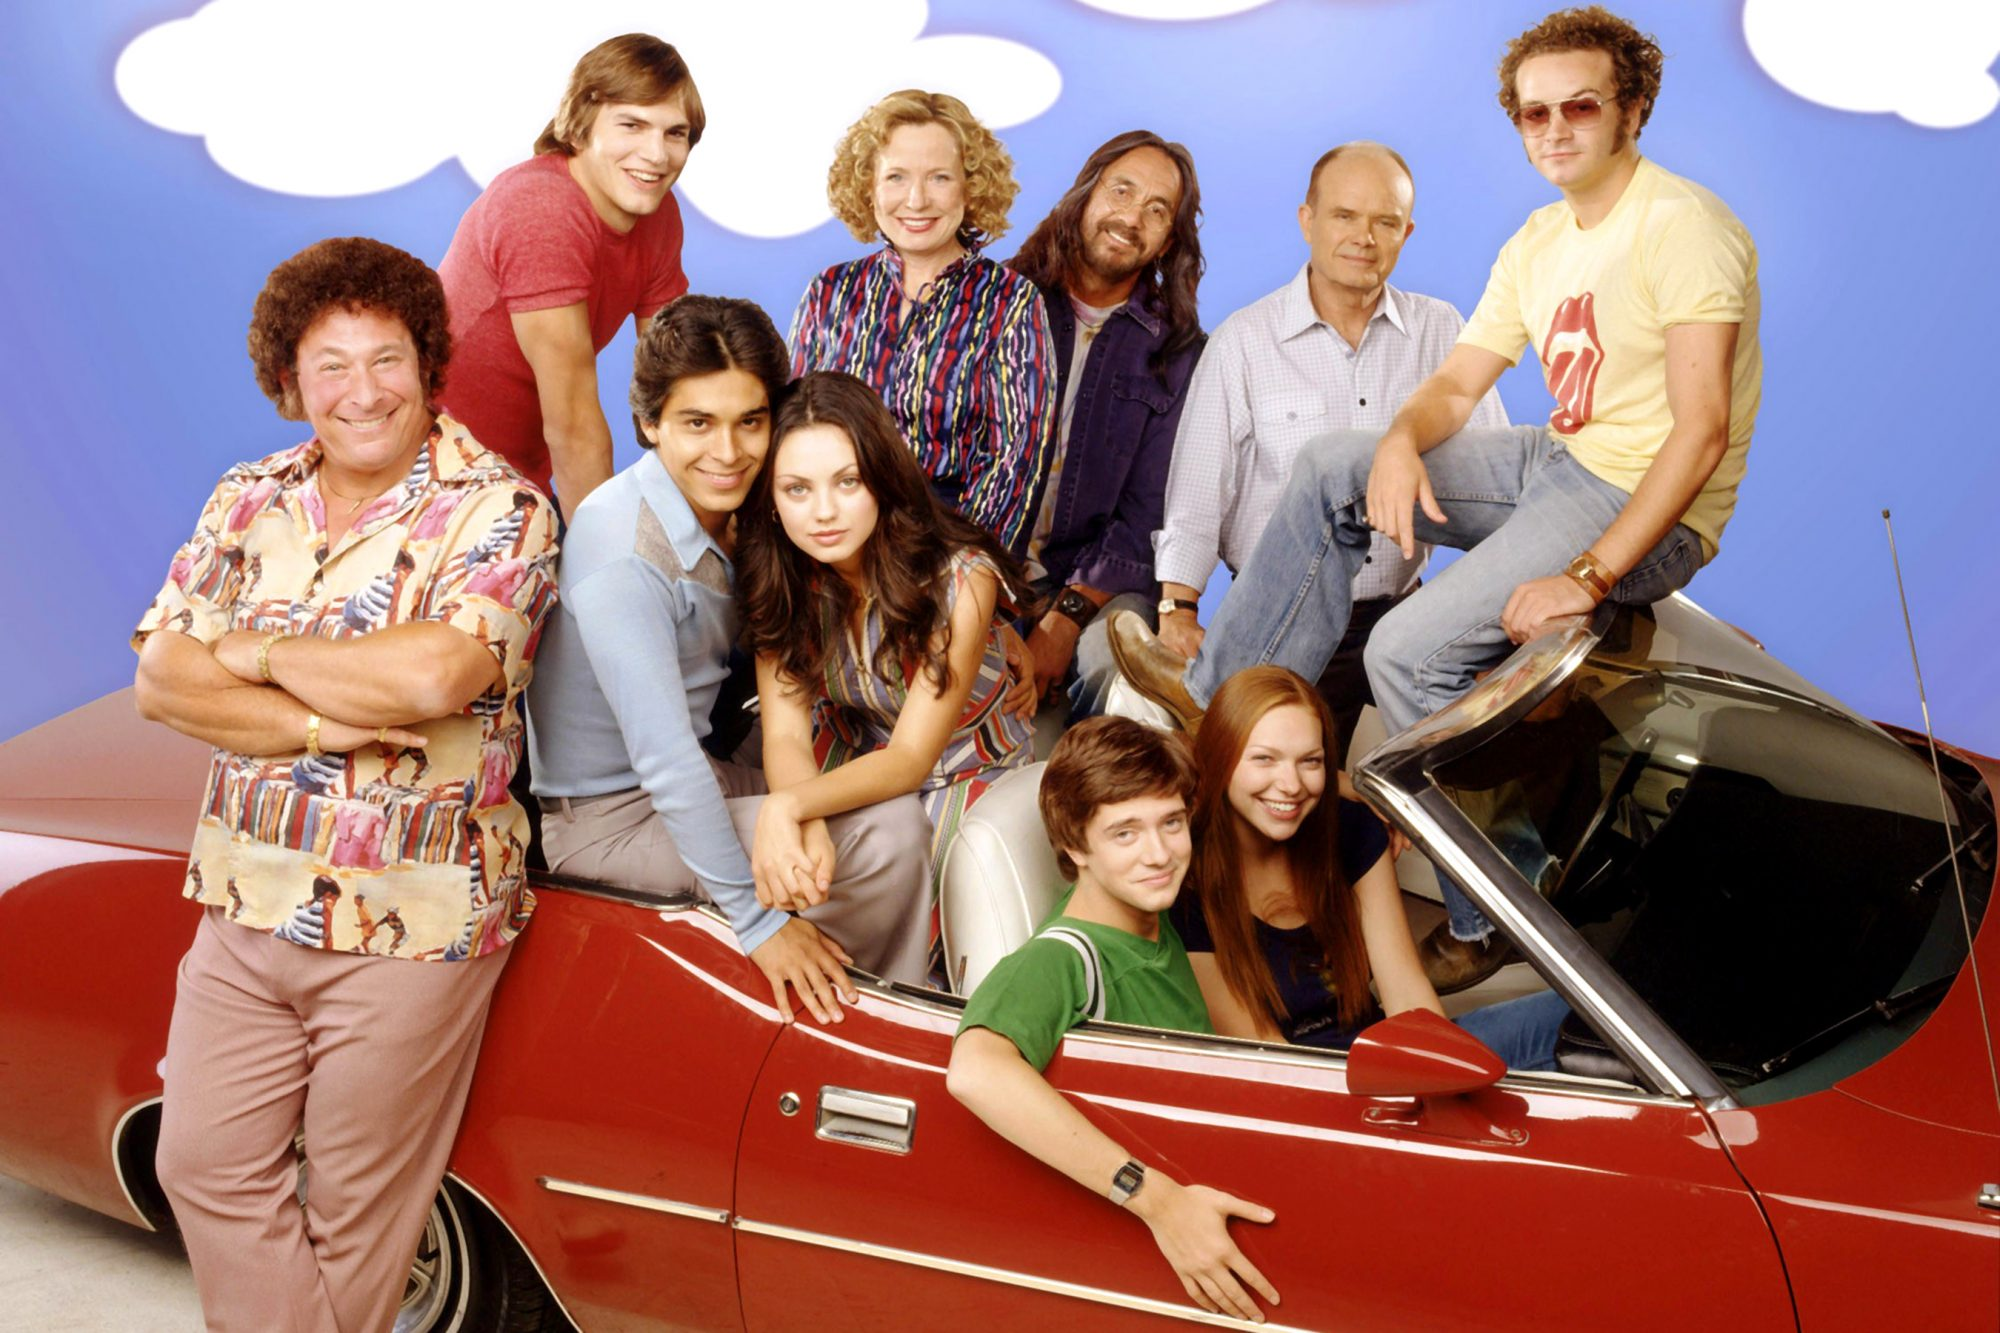 THAT '70s SHOW, (top, l to r): Ashton Kutcher, Debra Jo Rupp, Tommy Chong, Kurtwood Smith, Danny Mas